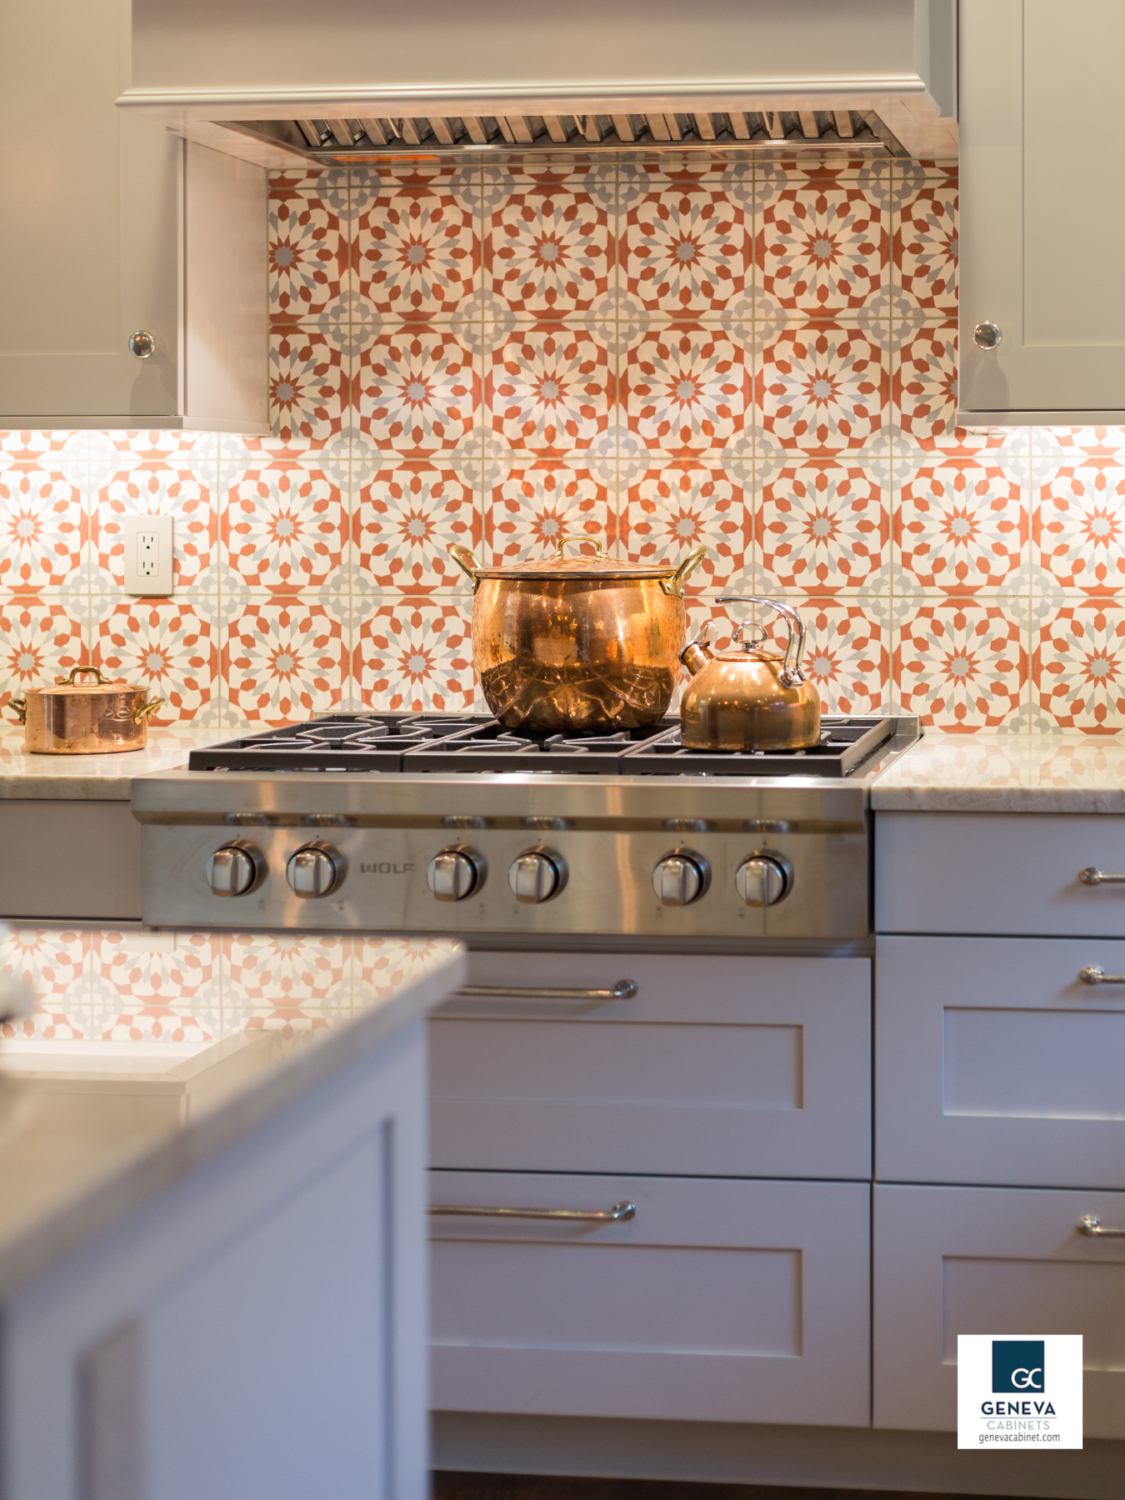 Geneva Cabinet Company Trends 2018 statement backsplash with artisan tile